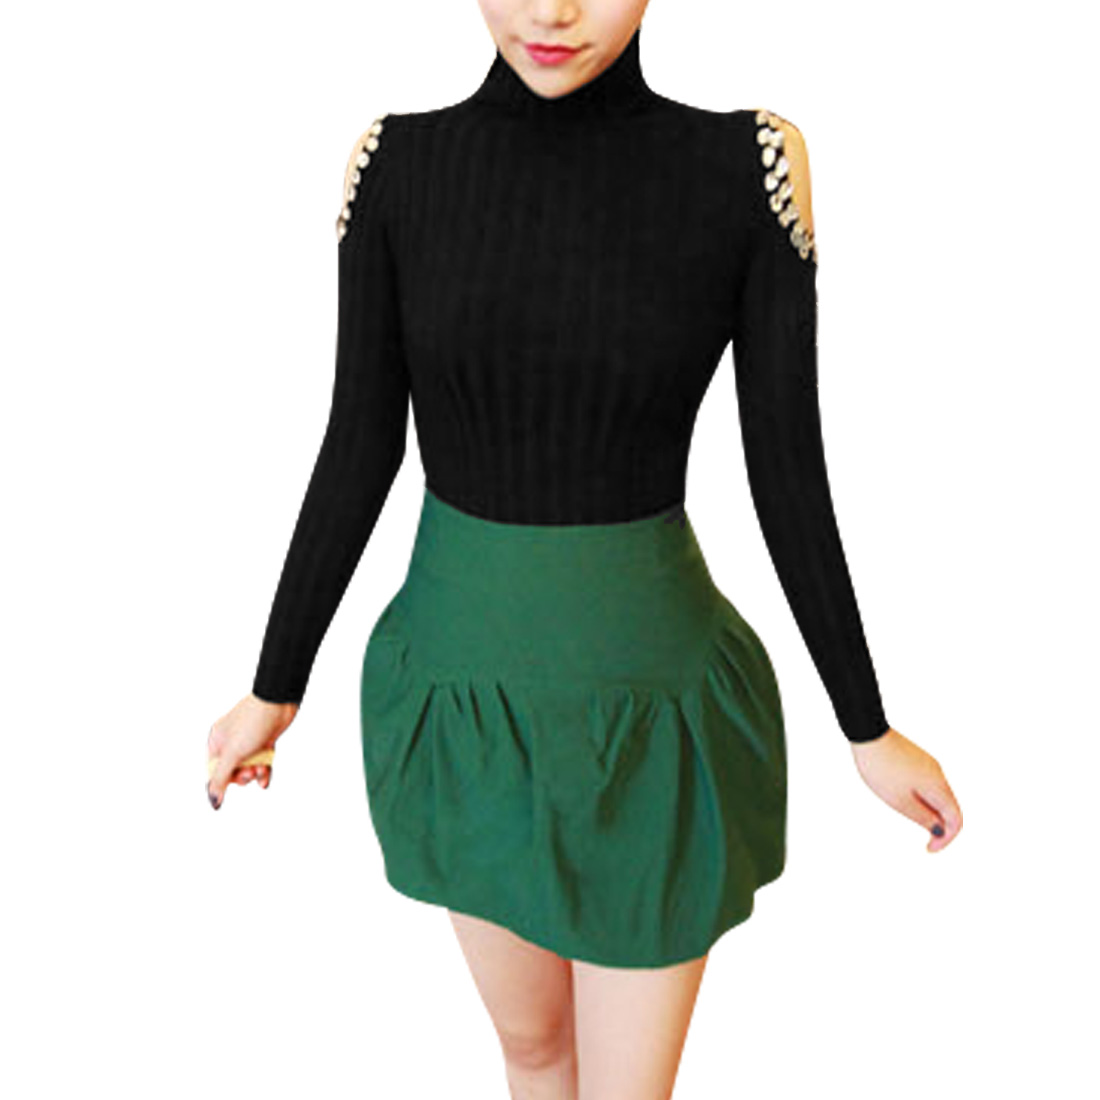 Women Turtle Neck Cut Out Shoulders Black Knit Top Shirt XS